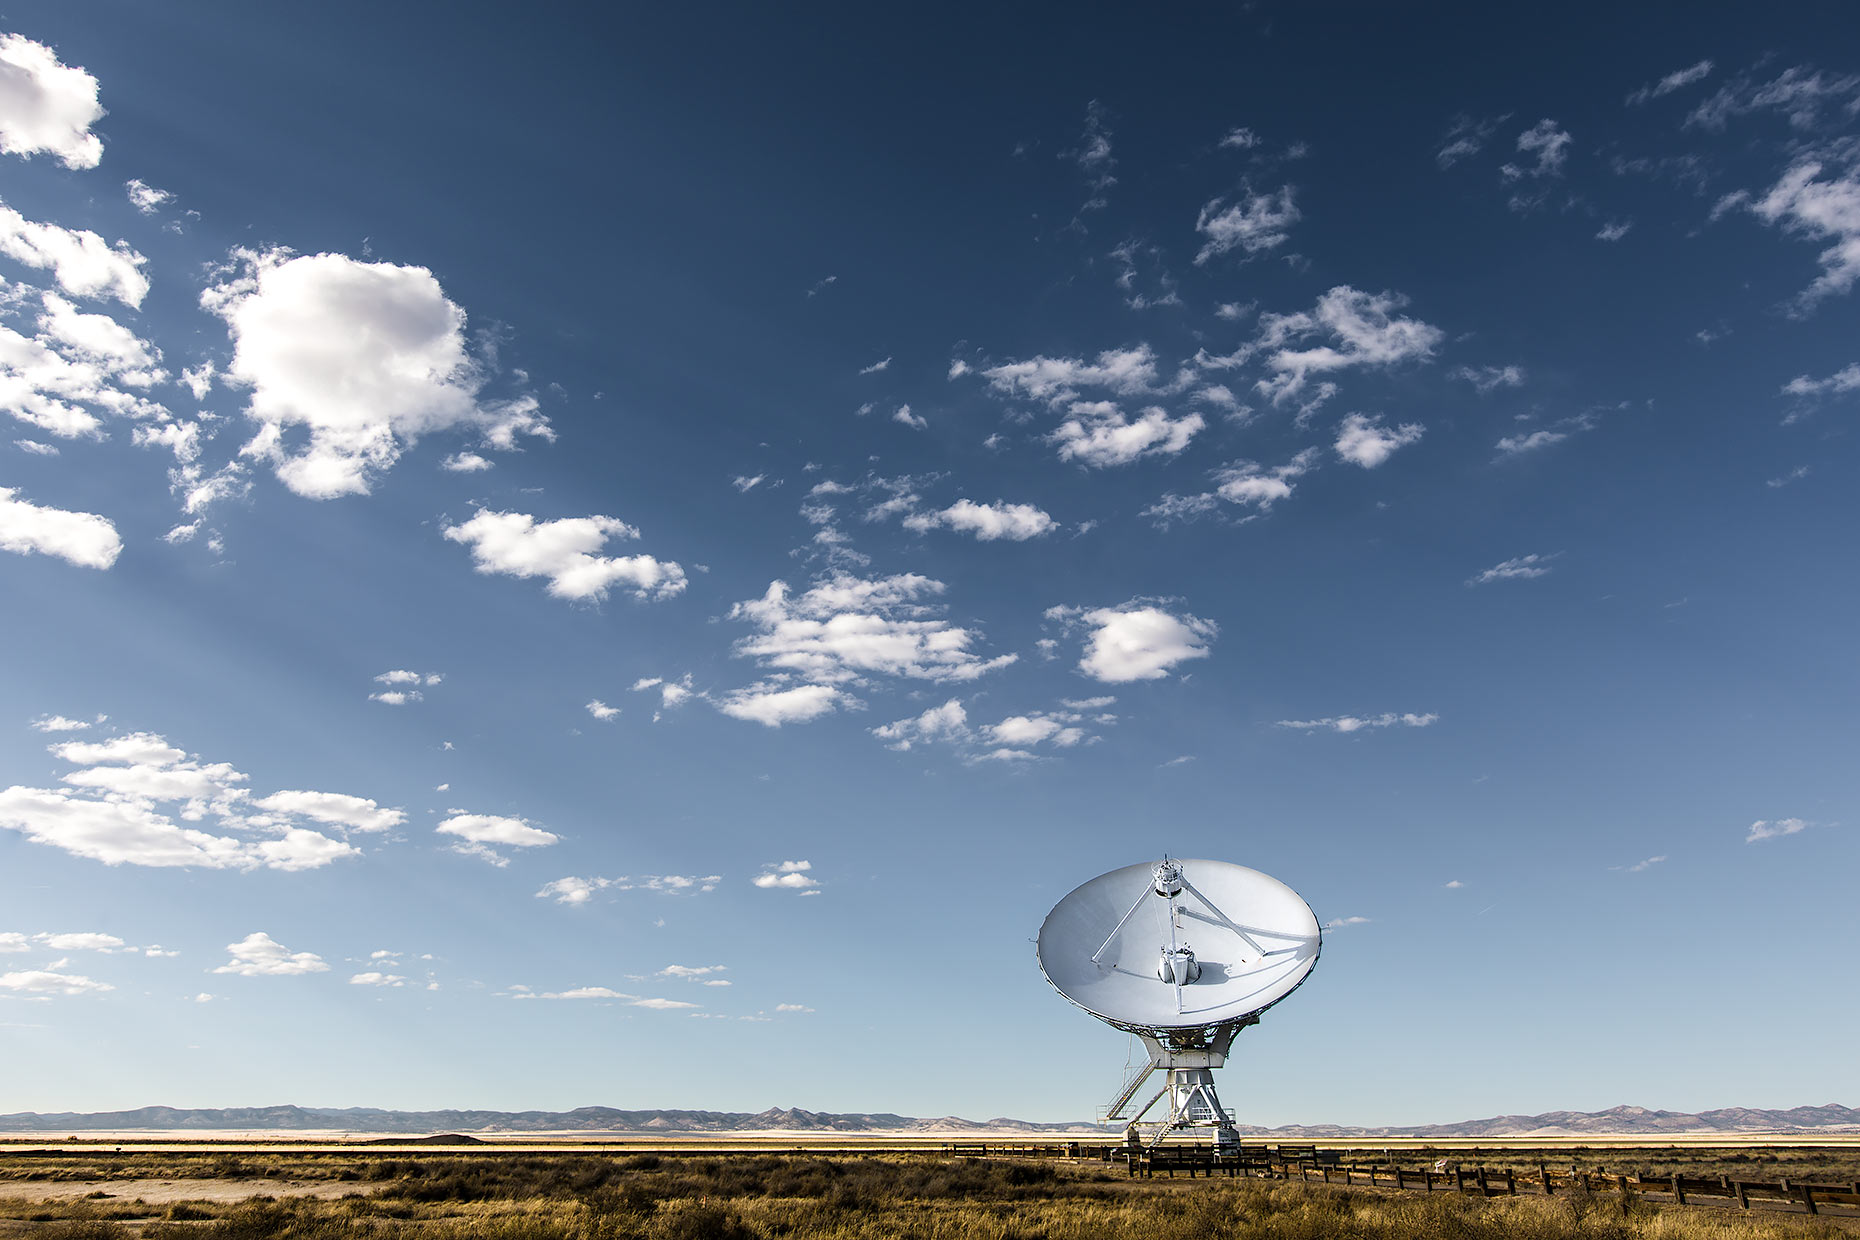 A radio antenna at the VLA with blue skies above |  Scott Gable industrial photographer